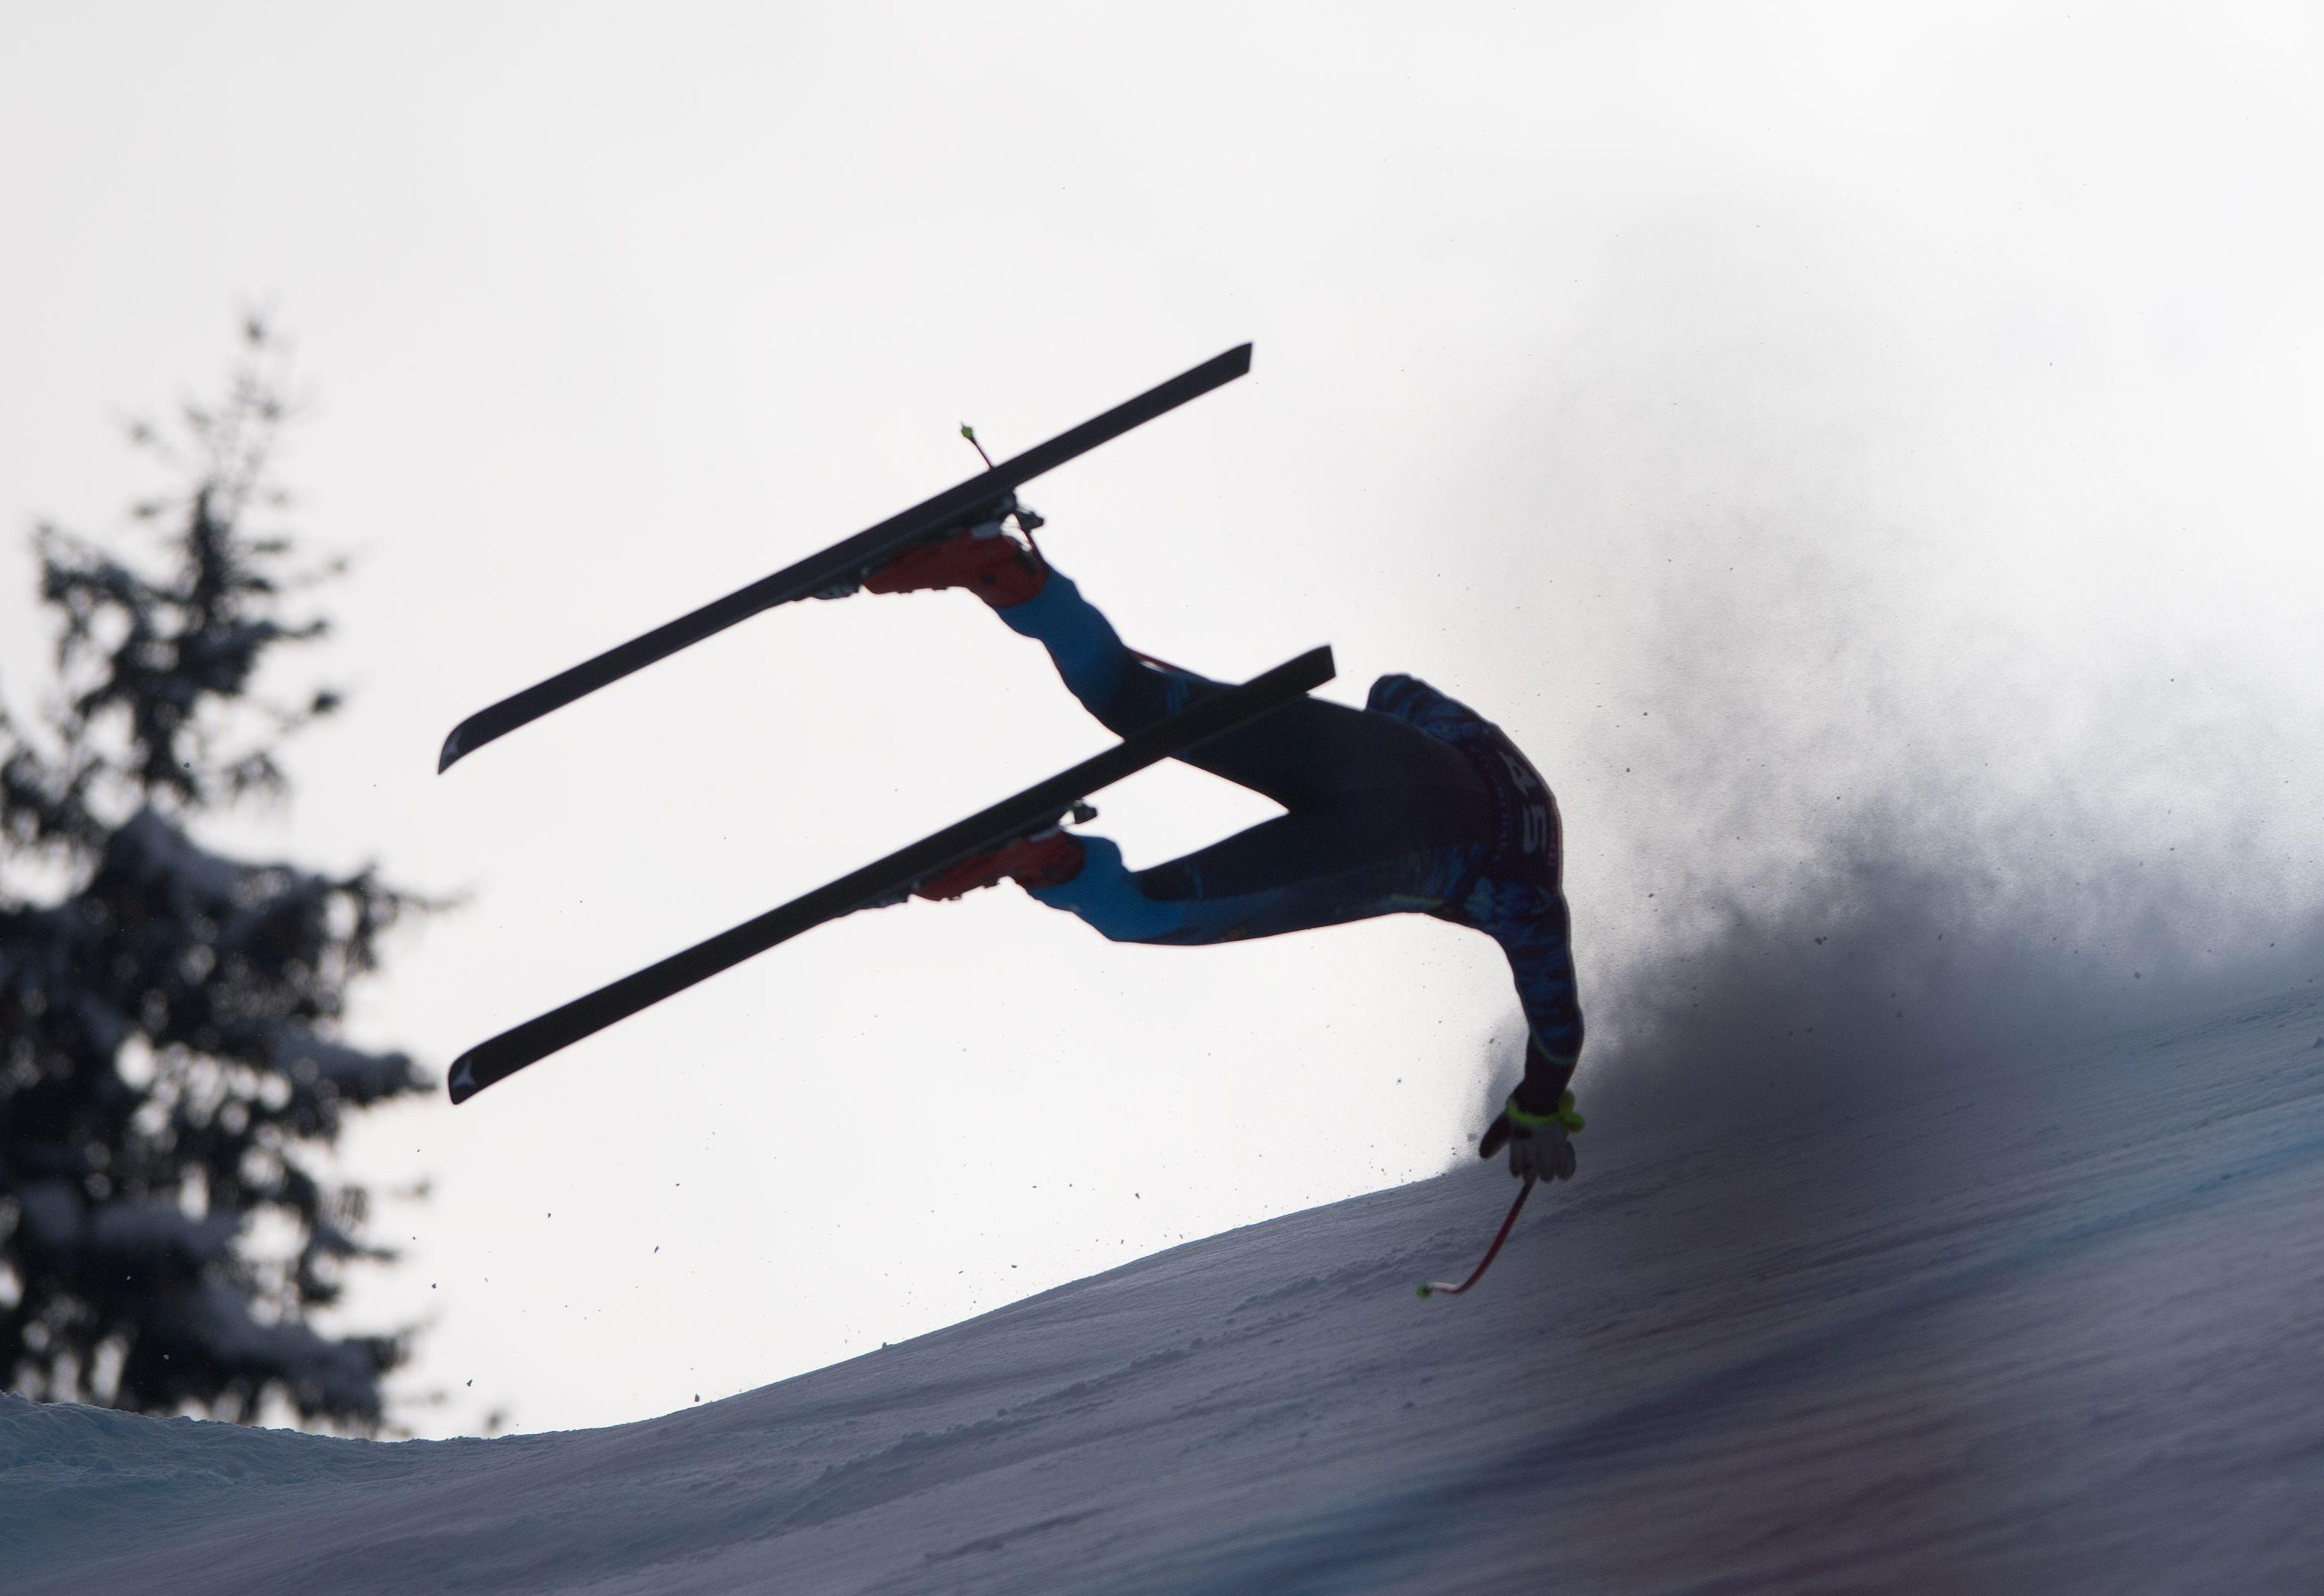 Alexander Koell suffered a horror crash during the skiing World Cup in Austria